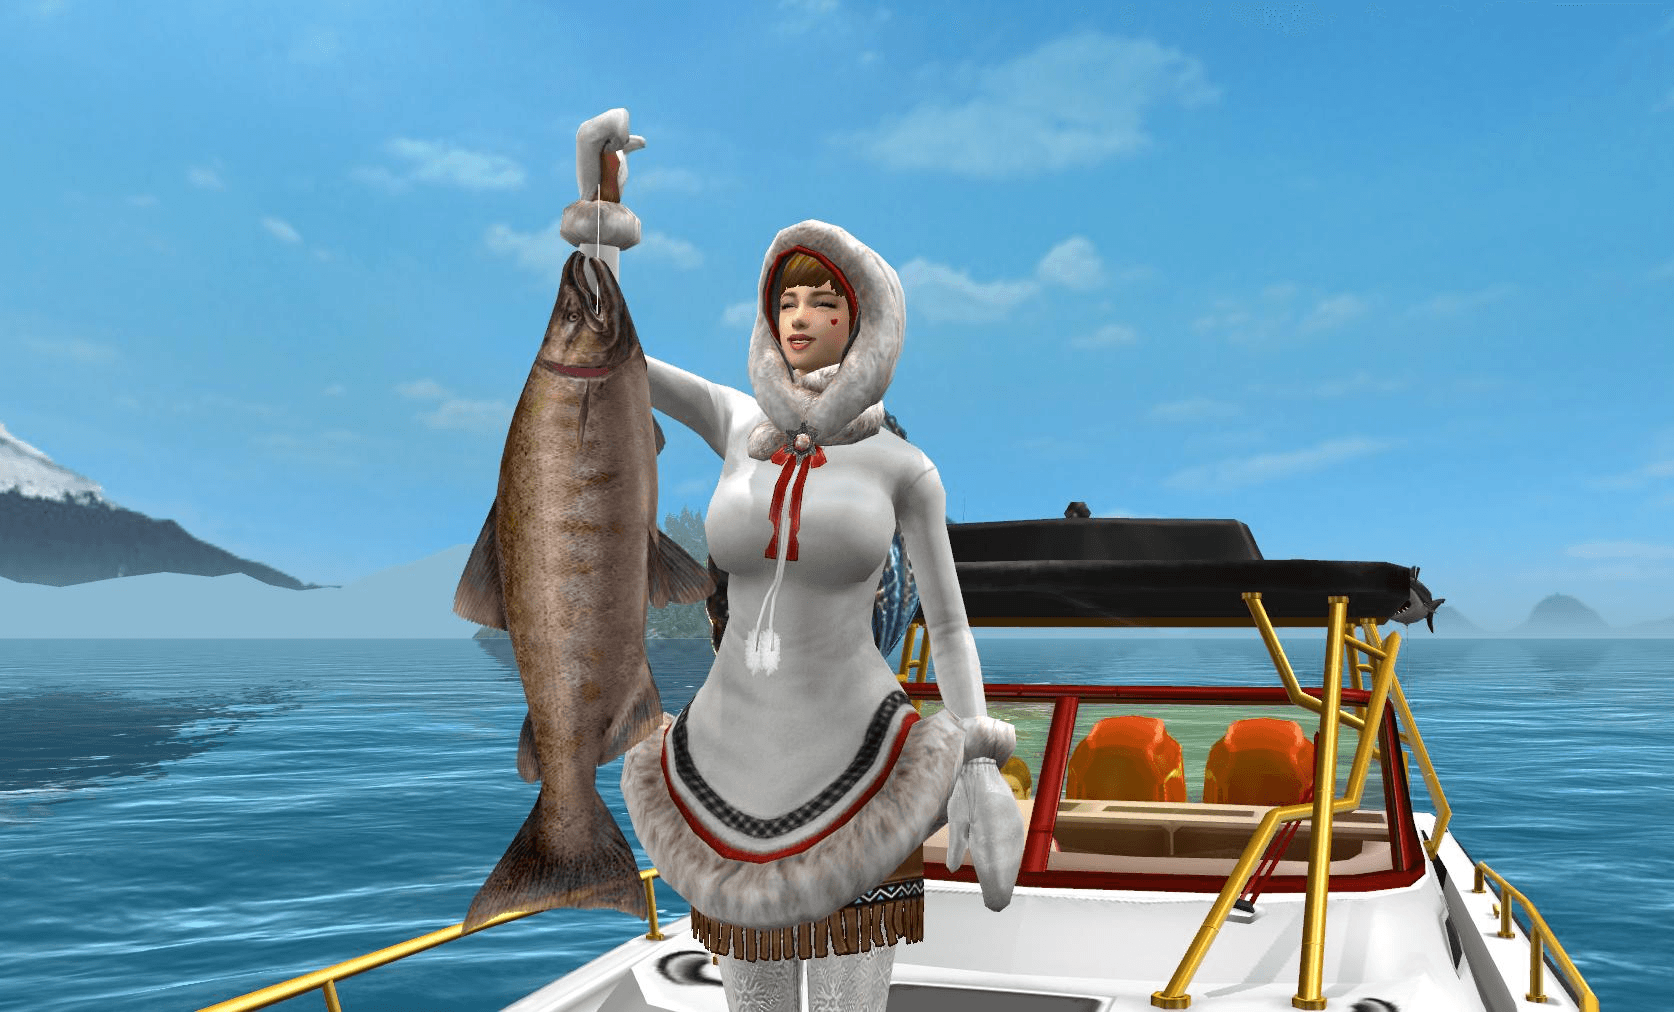 big game fishing simulation mmo sets sail for europe